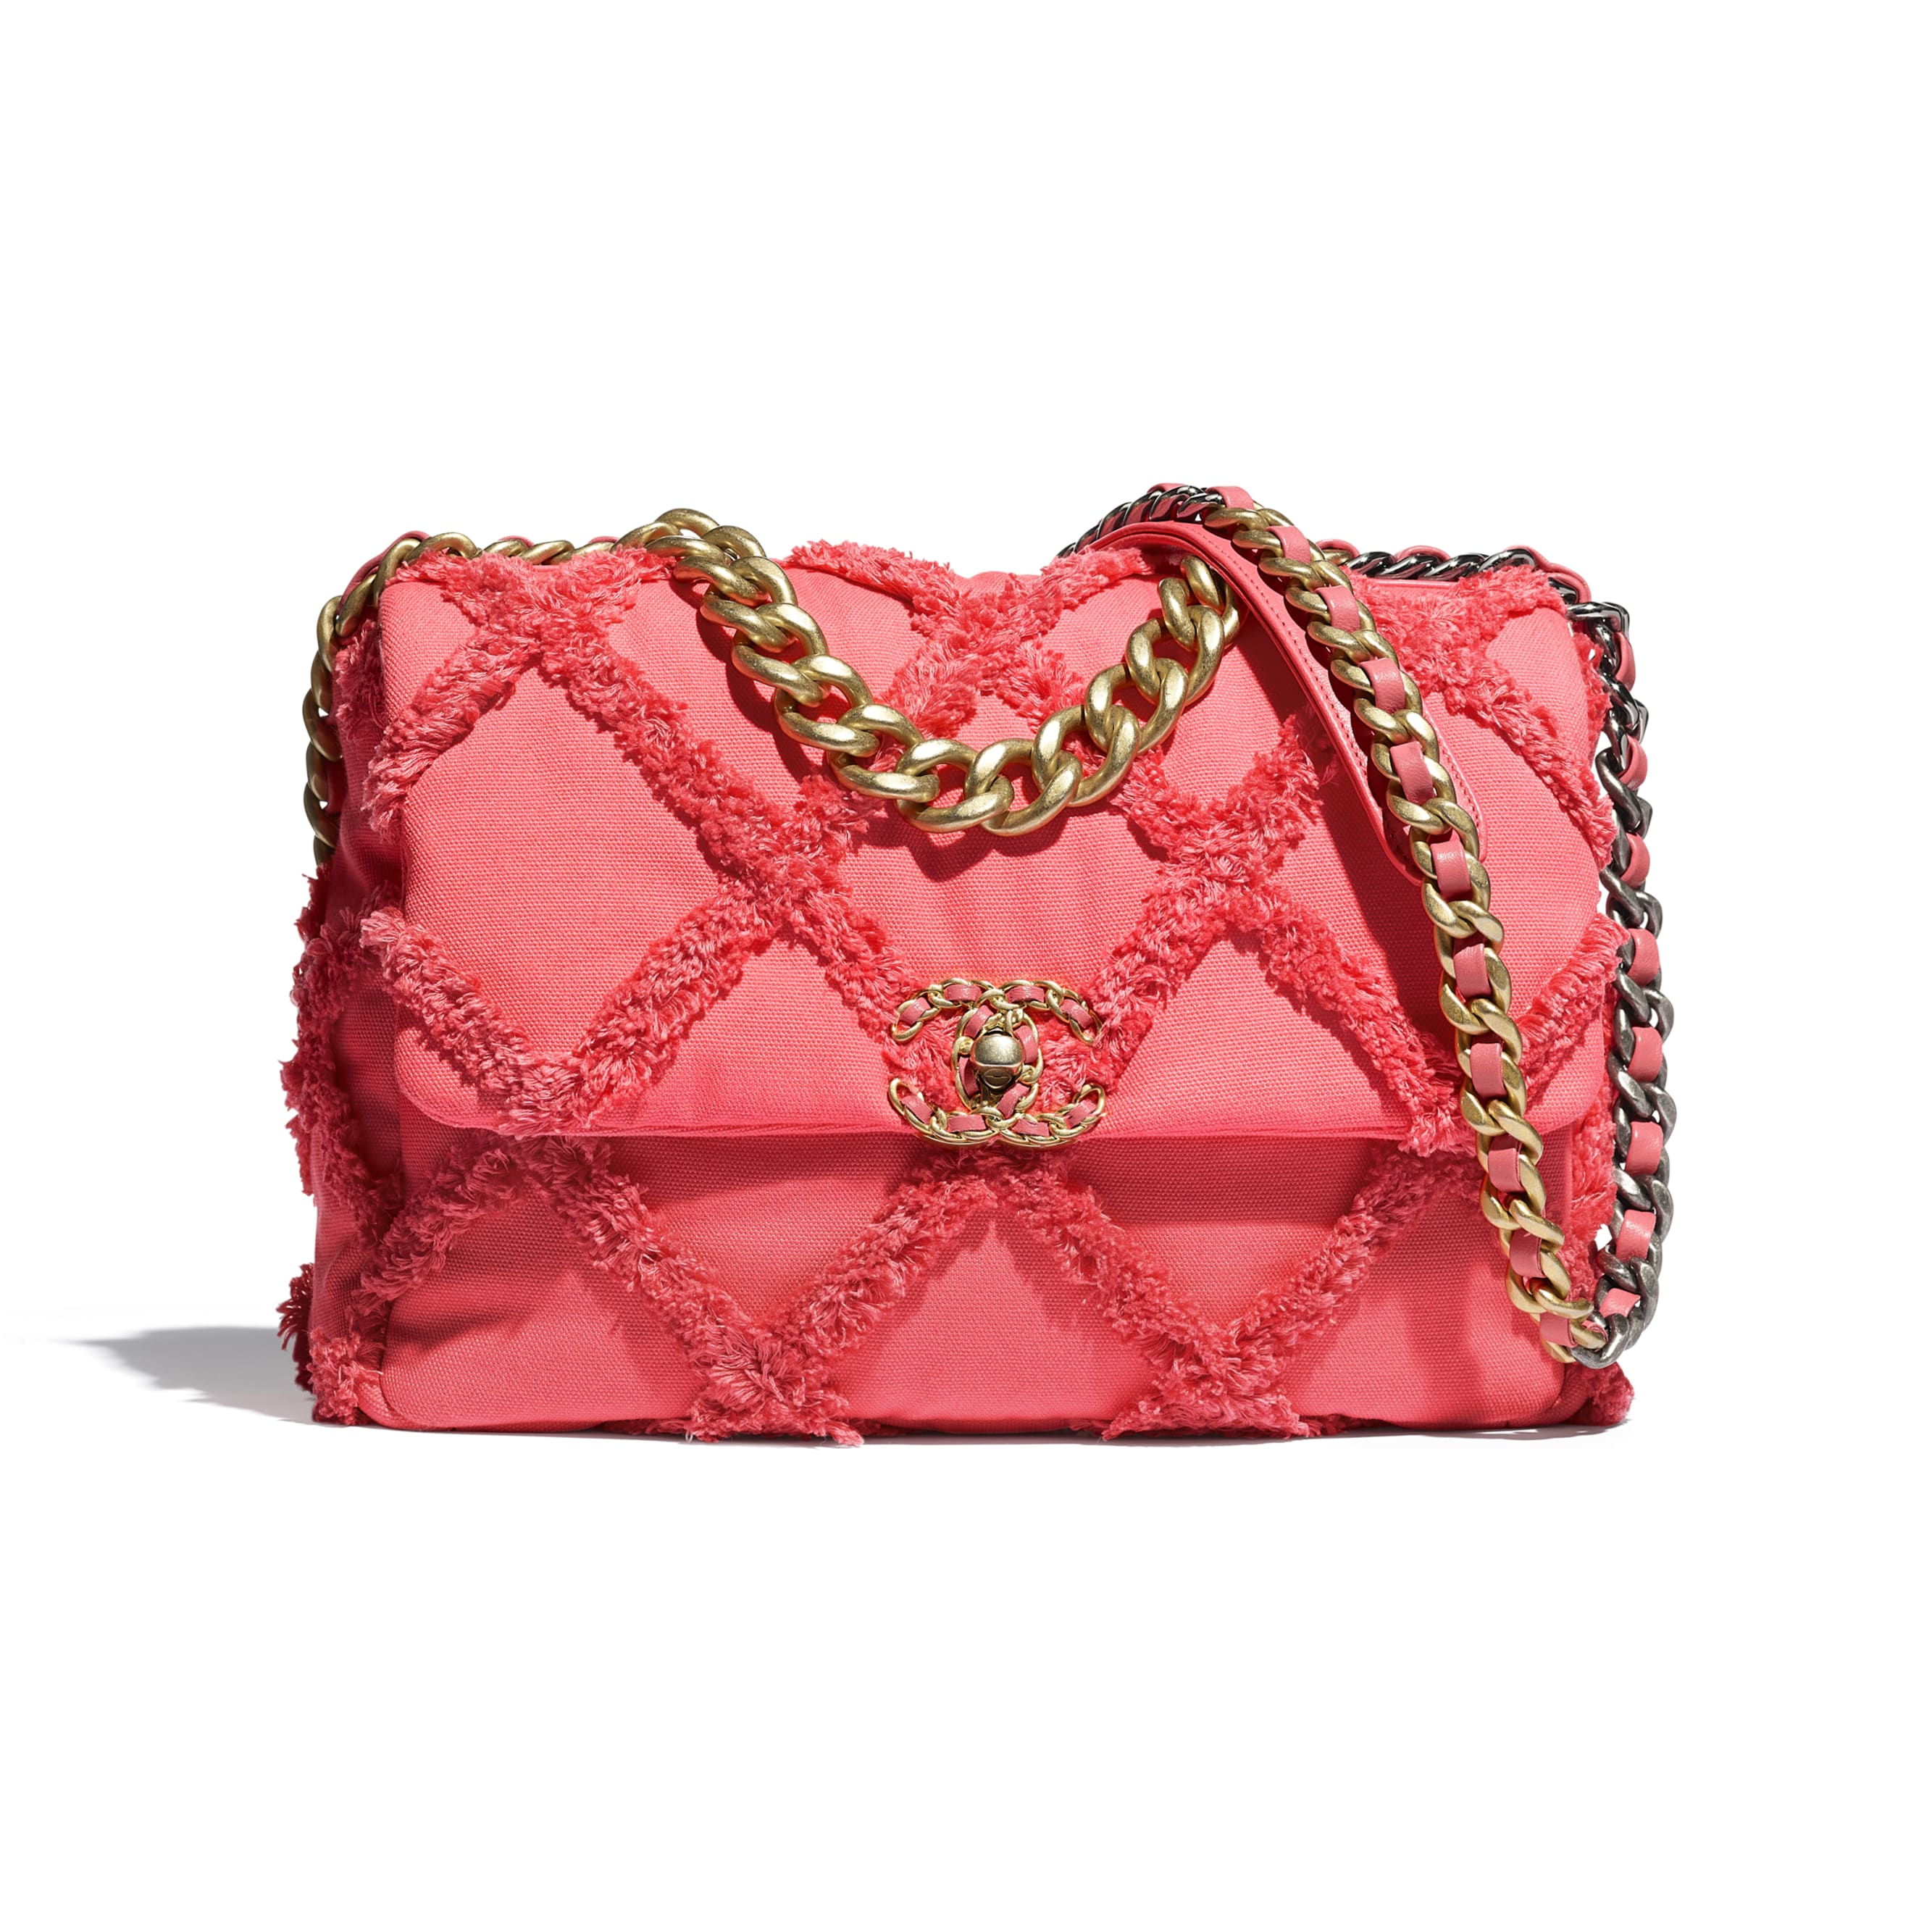 CHANEL 19 Large Flap Bag - Coral - Cotton Canvas, Calfskin, Gold-Tone, Silver-Tone & Ruthenium-Finish Metal - CHANEL - Default view - see standard sized version